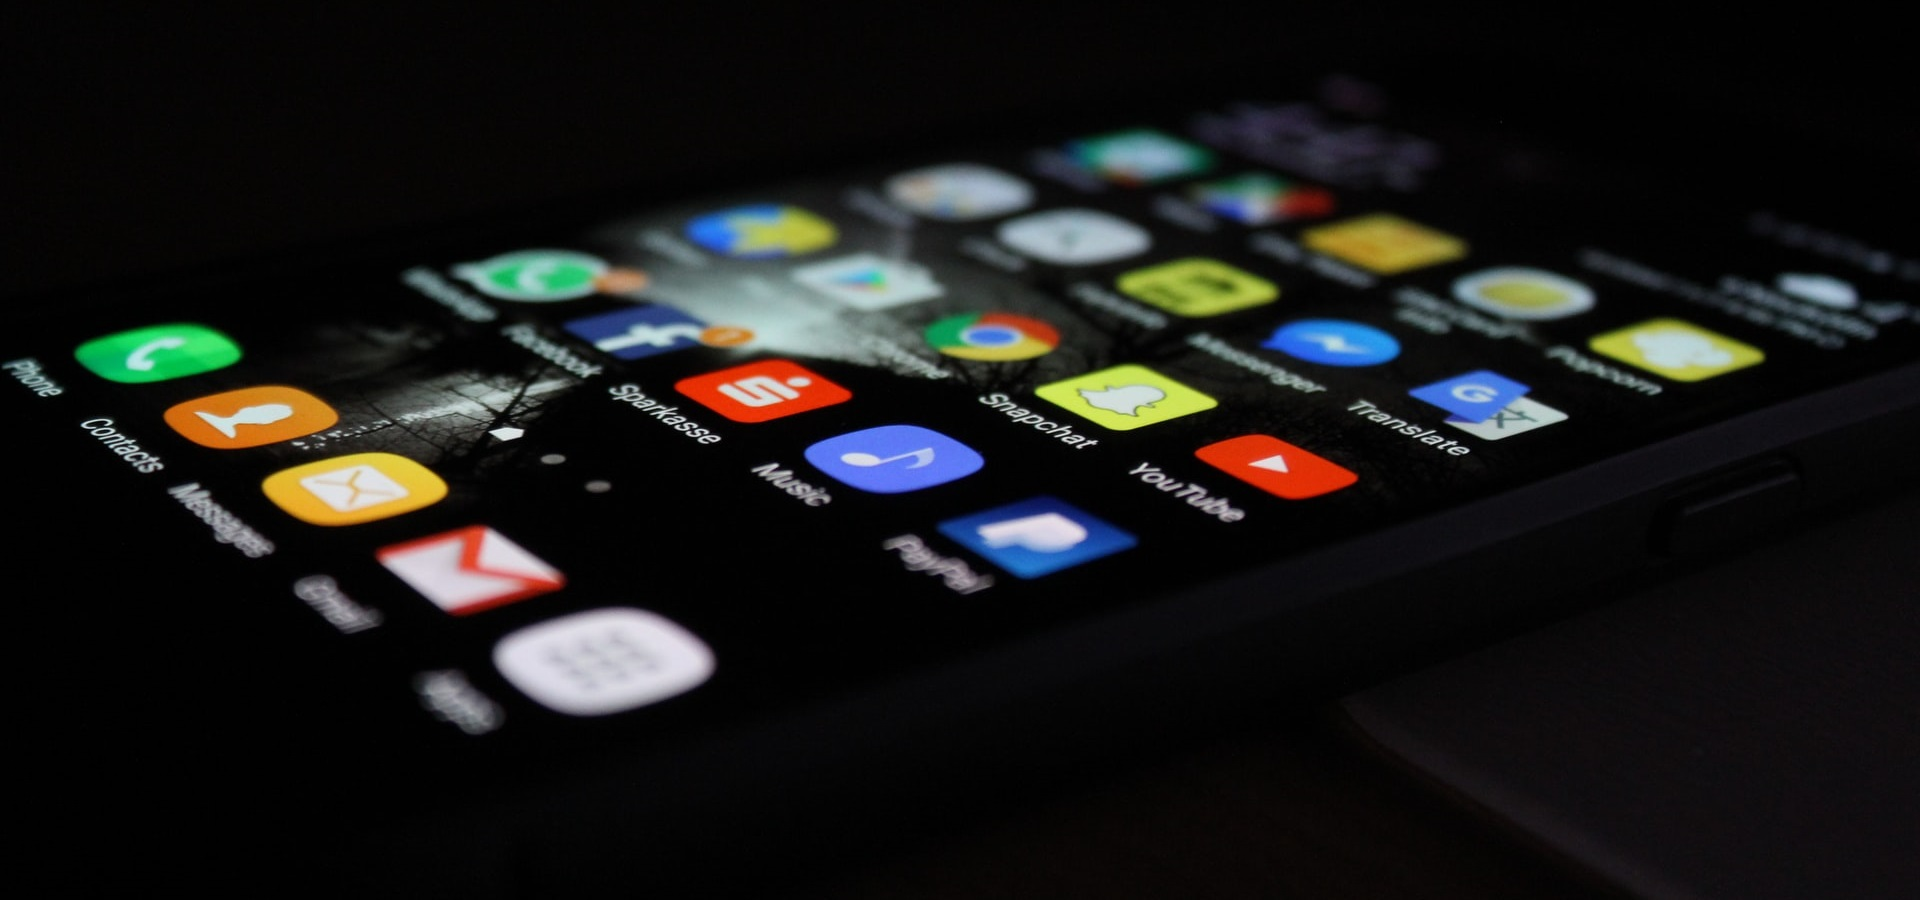 3 Important Facts You Should Know About Apps